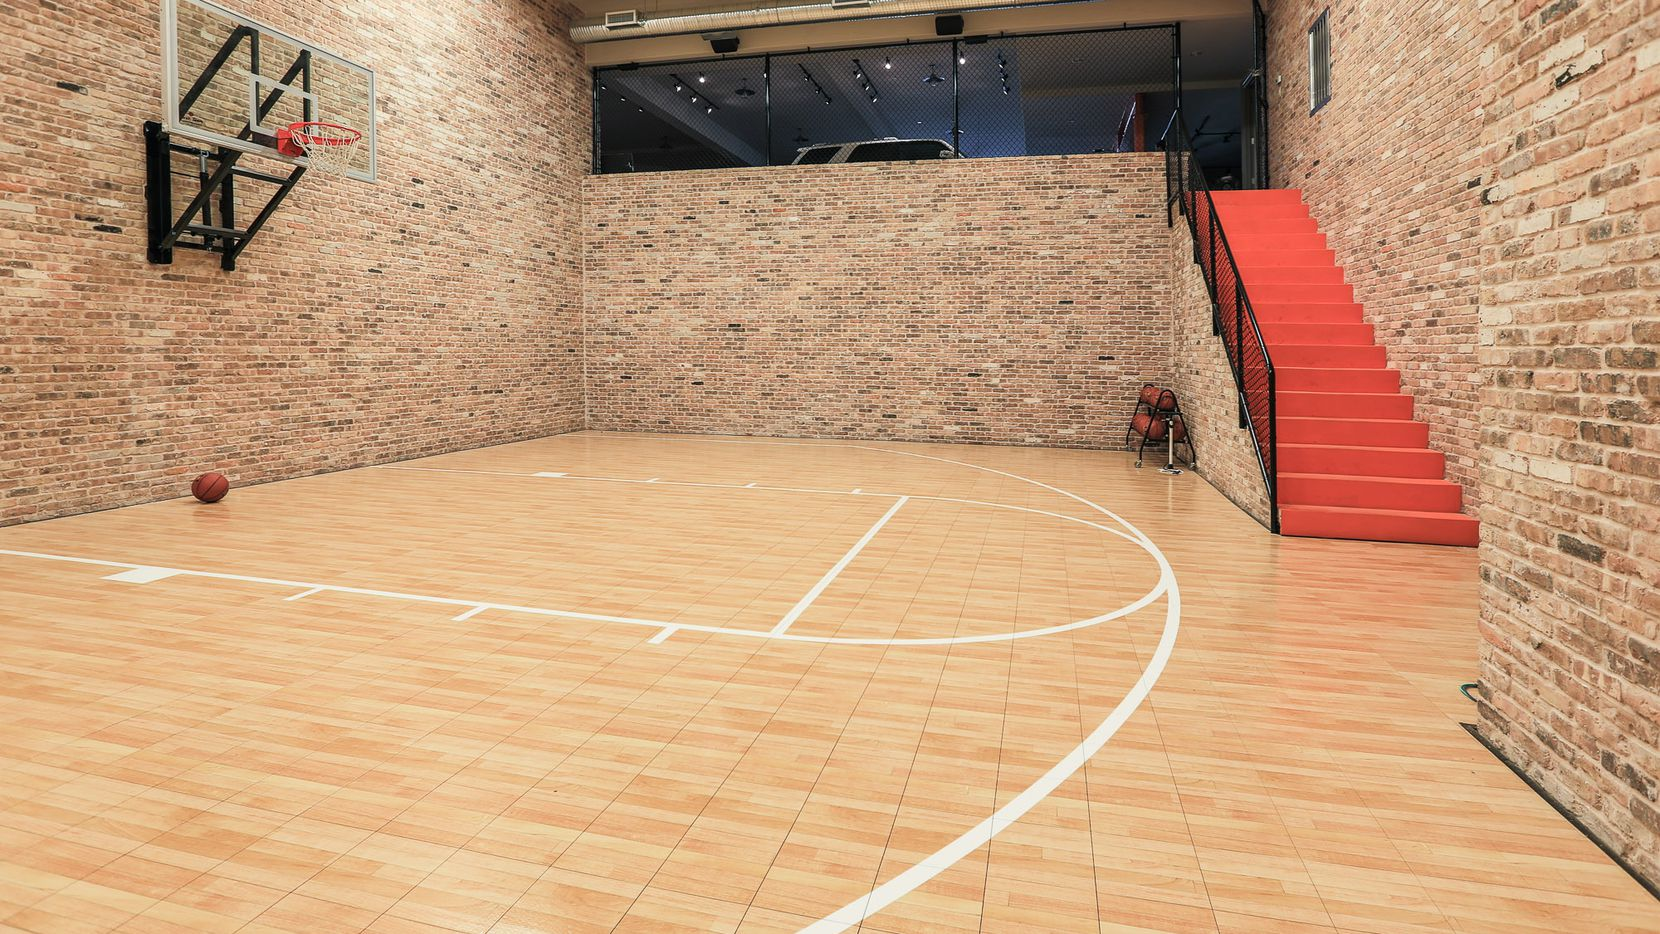 See Inside Jordan Spieth S Dallas Mega Mansion With 12 Car Garage And Hoops Court